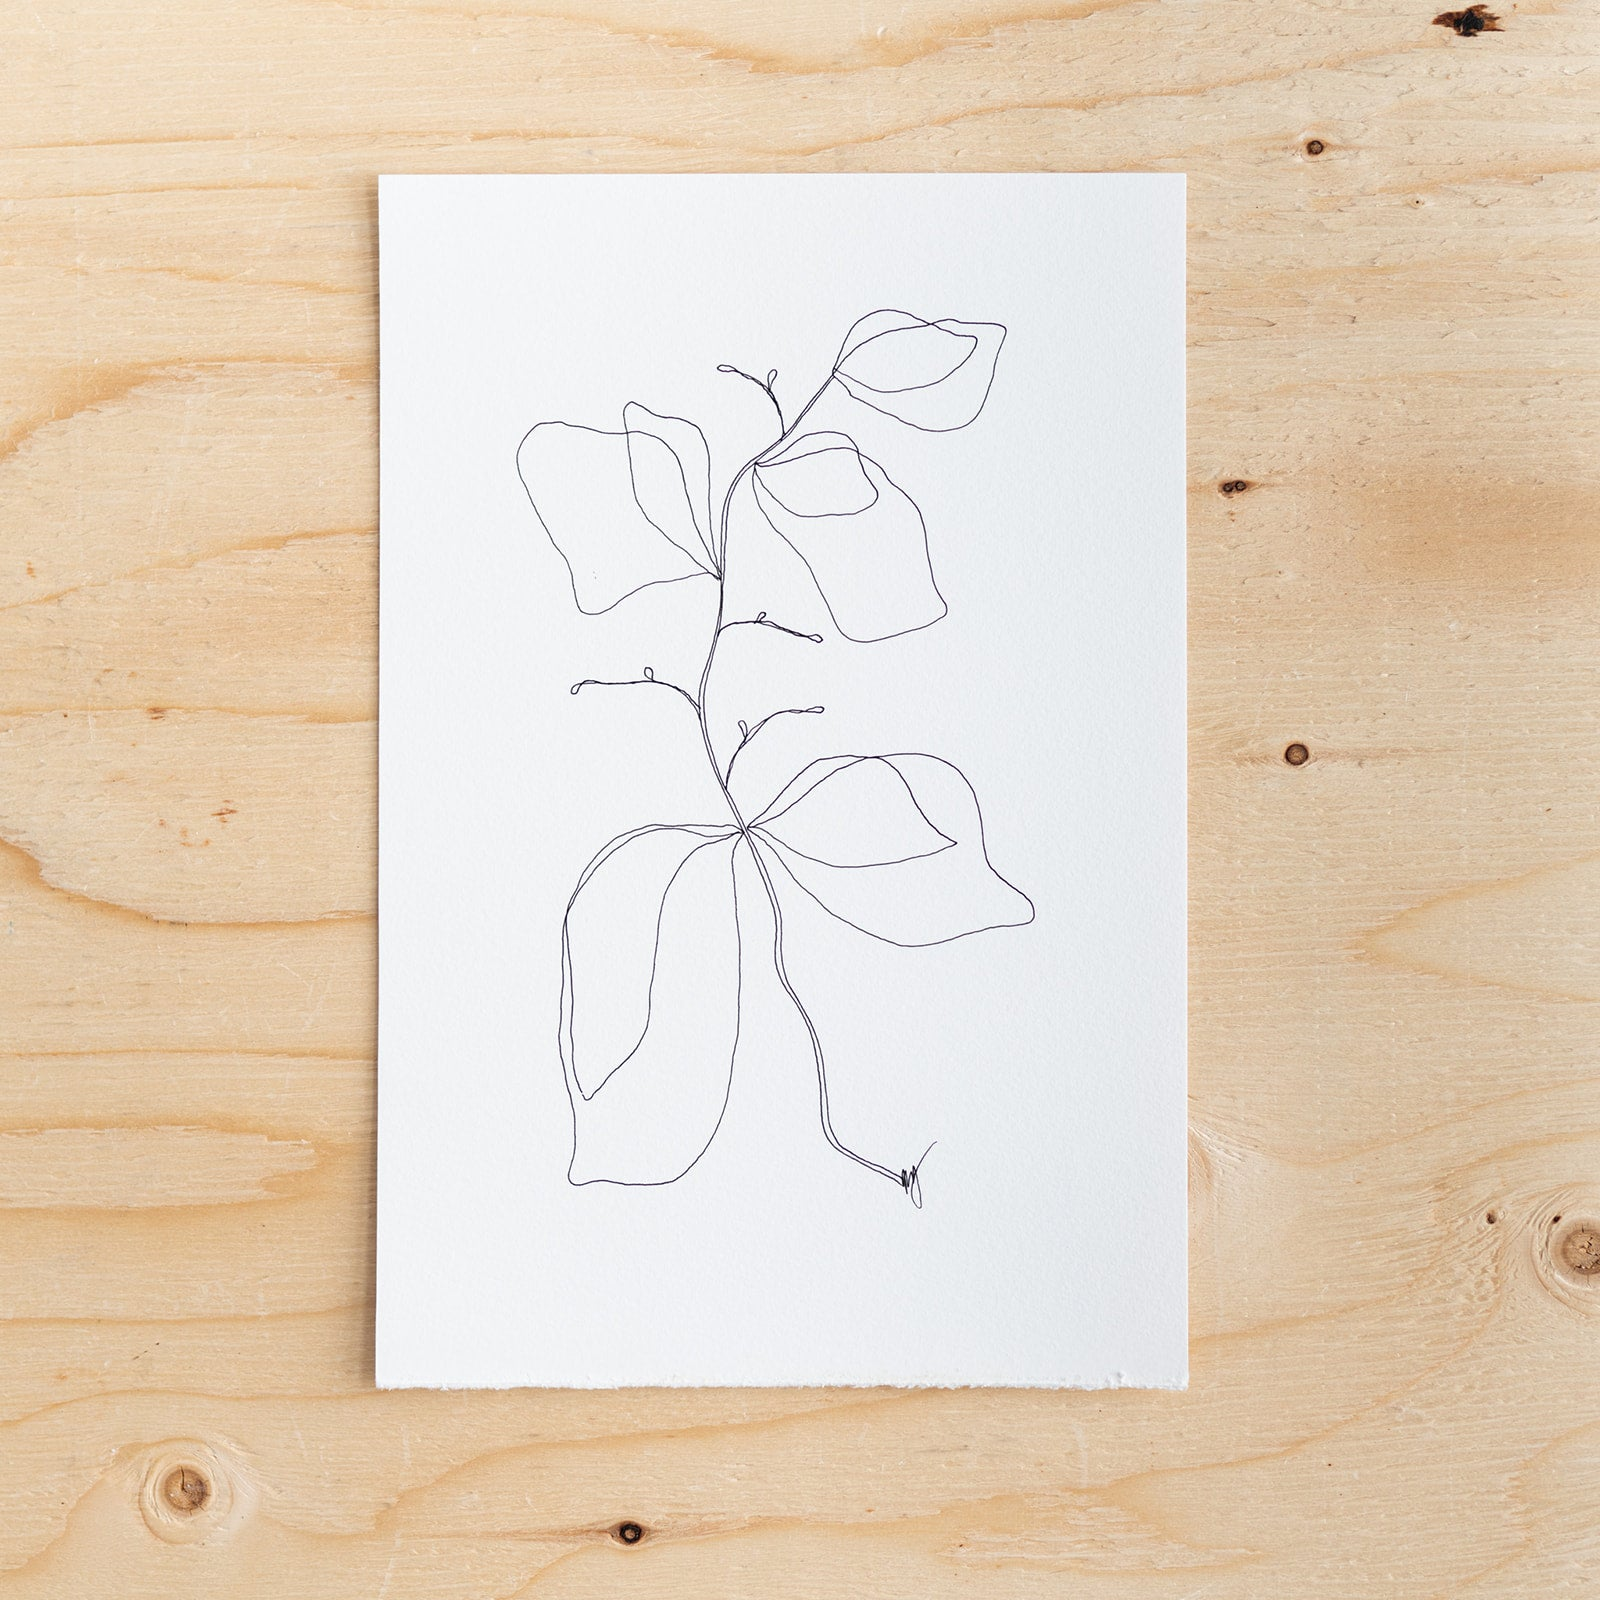 Botanical Line Drawing by Melissa Mary Jenkins